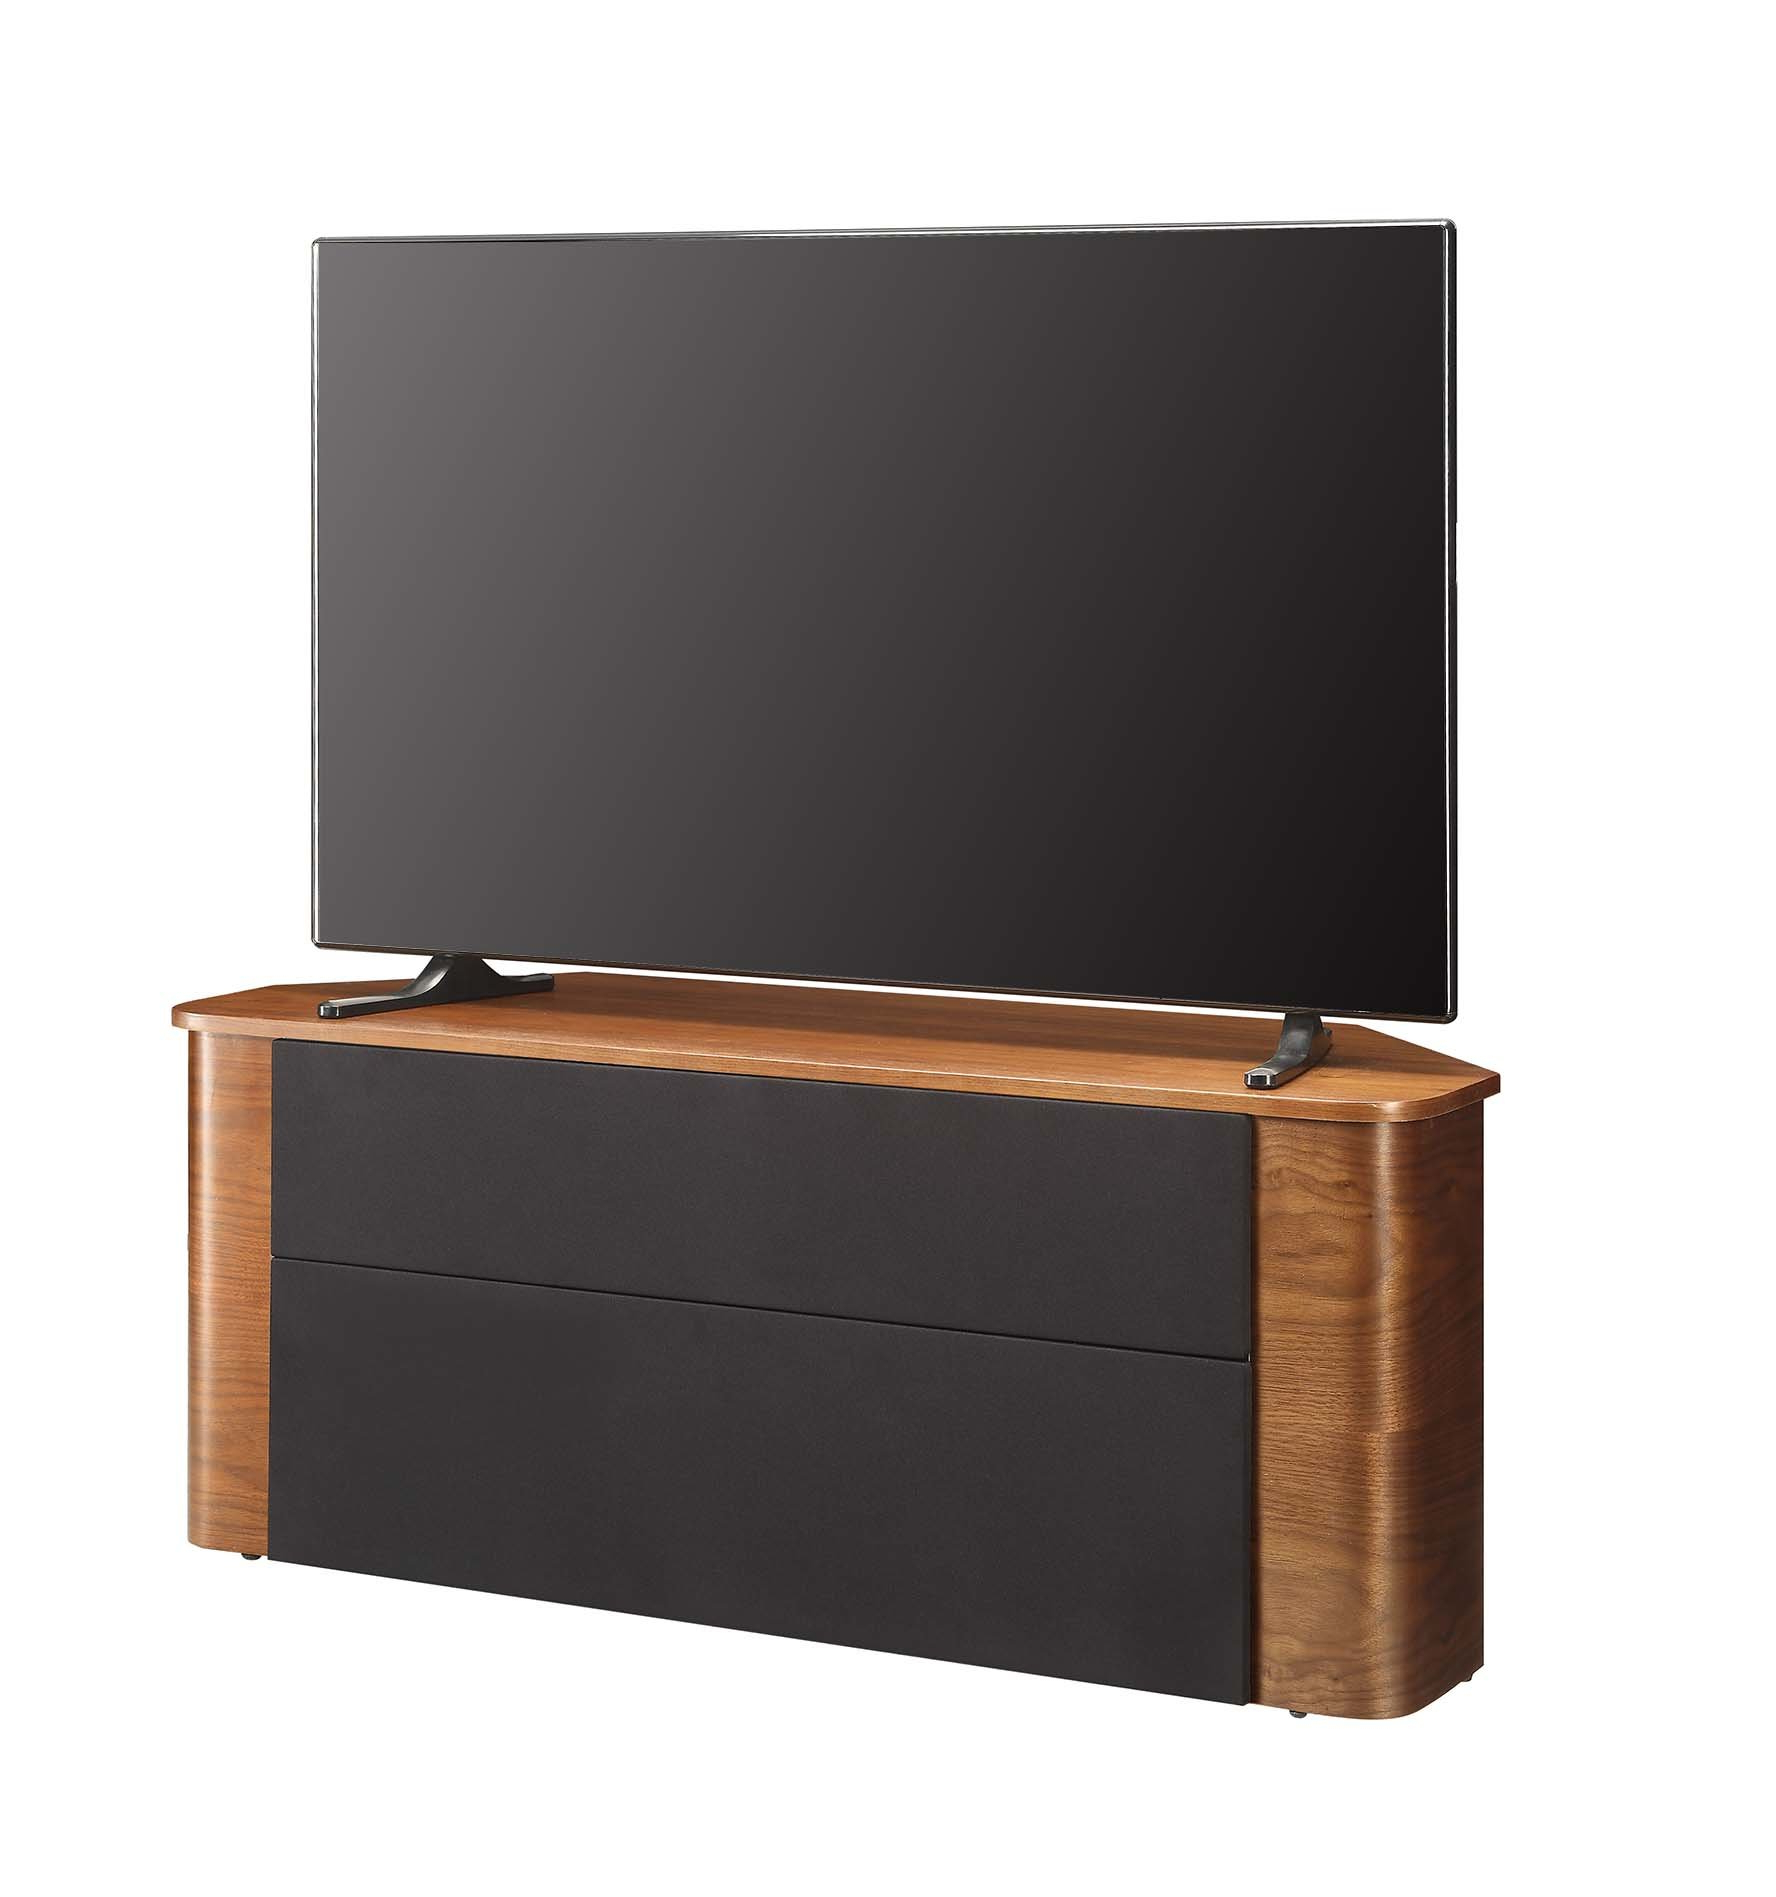 Single Shelf Tv Stands Pertaining To Most Recent Corner Tv Stands You'll Love (View 13 of 20)